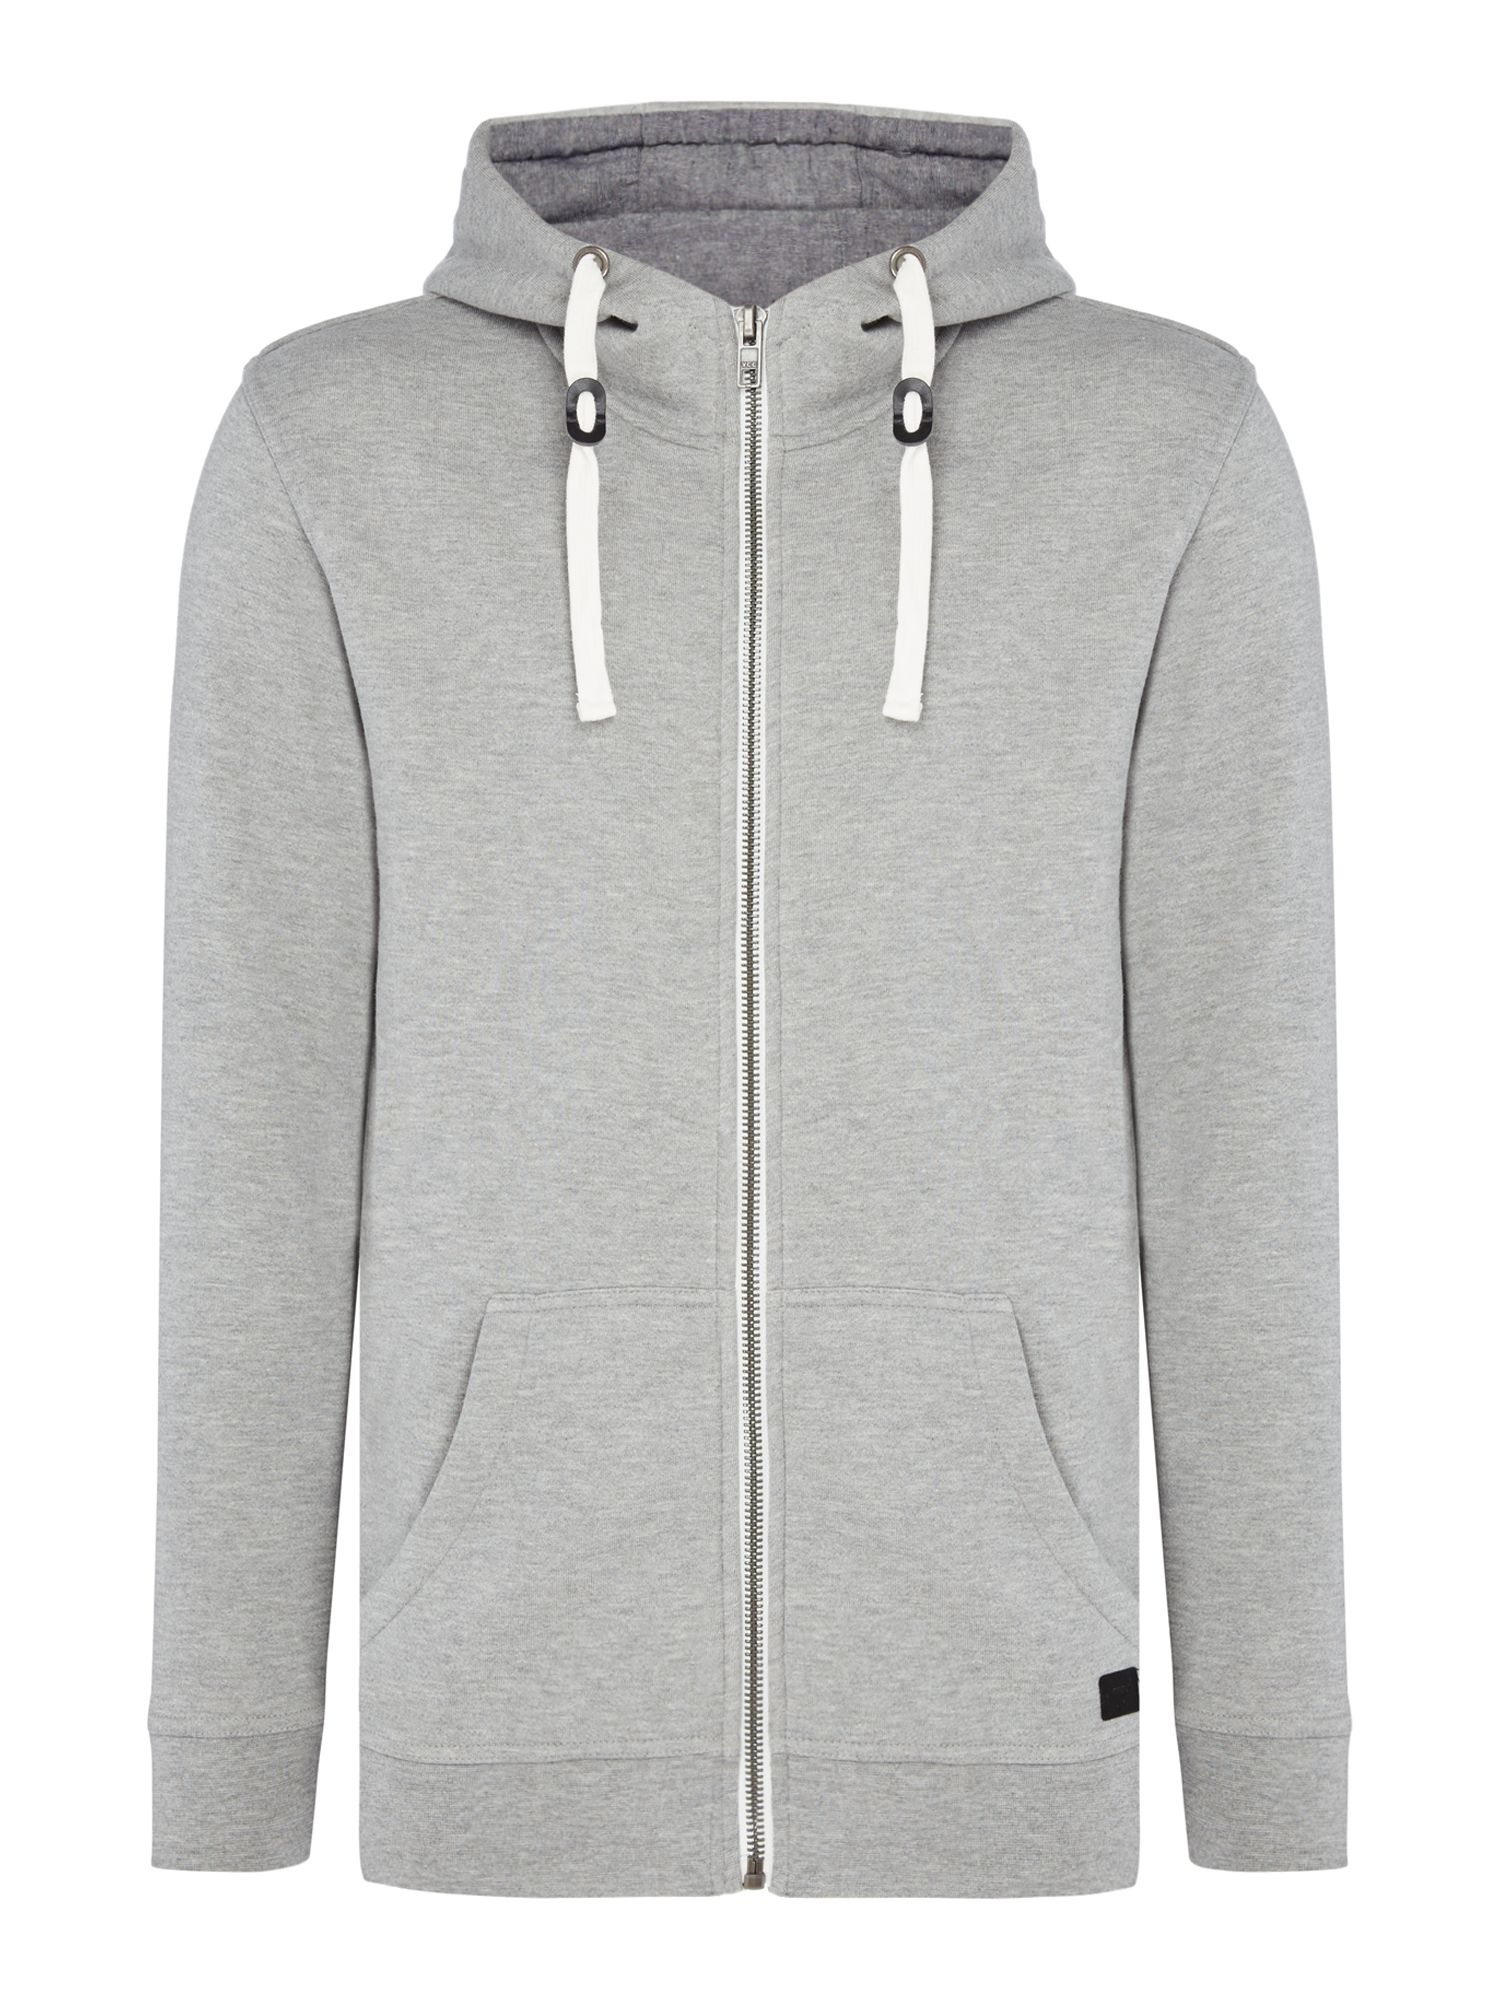 Men's Minimum Hooded Jumper, Grey